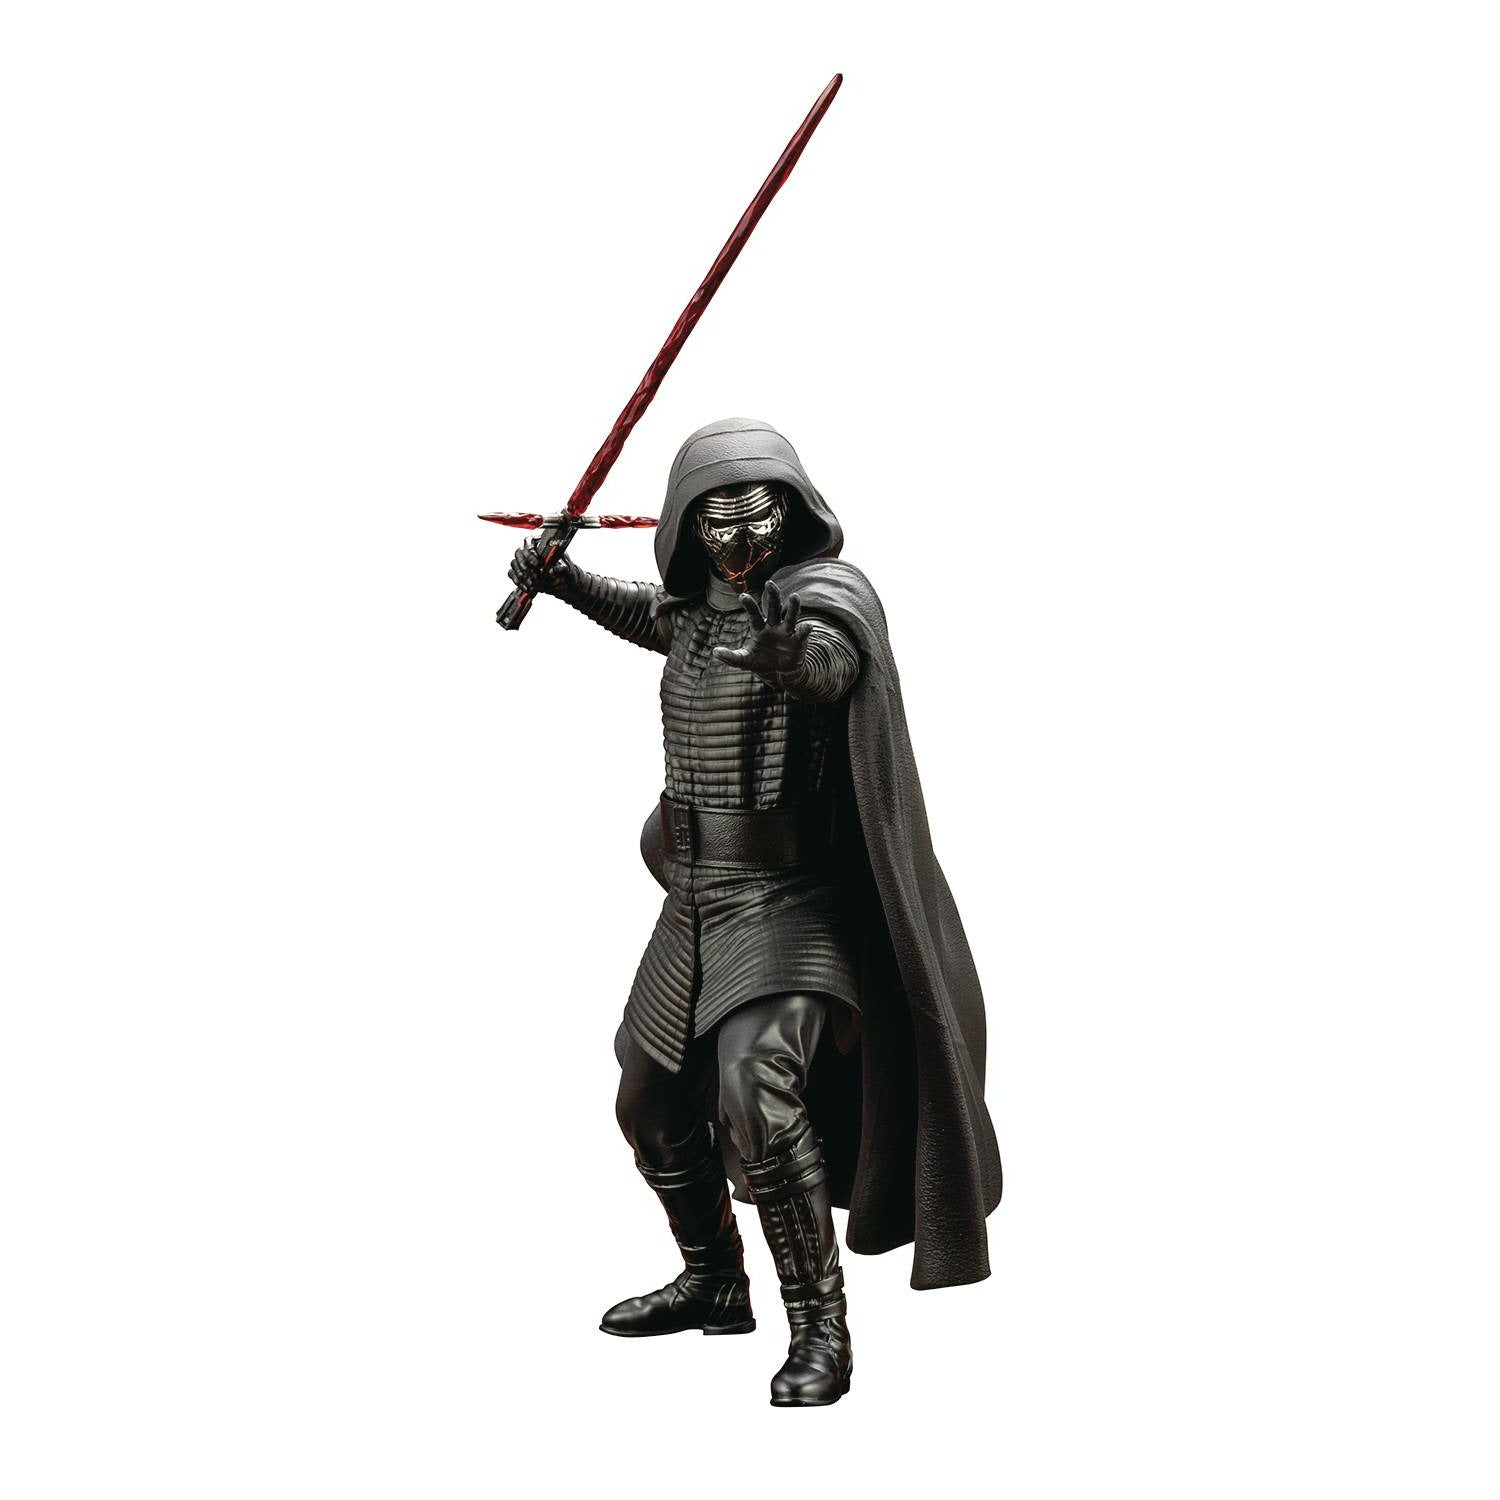 Star Wars The Rise of Skywalker: Kylo Ren ARTFX+ Statue